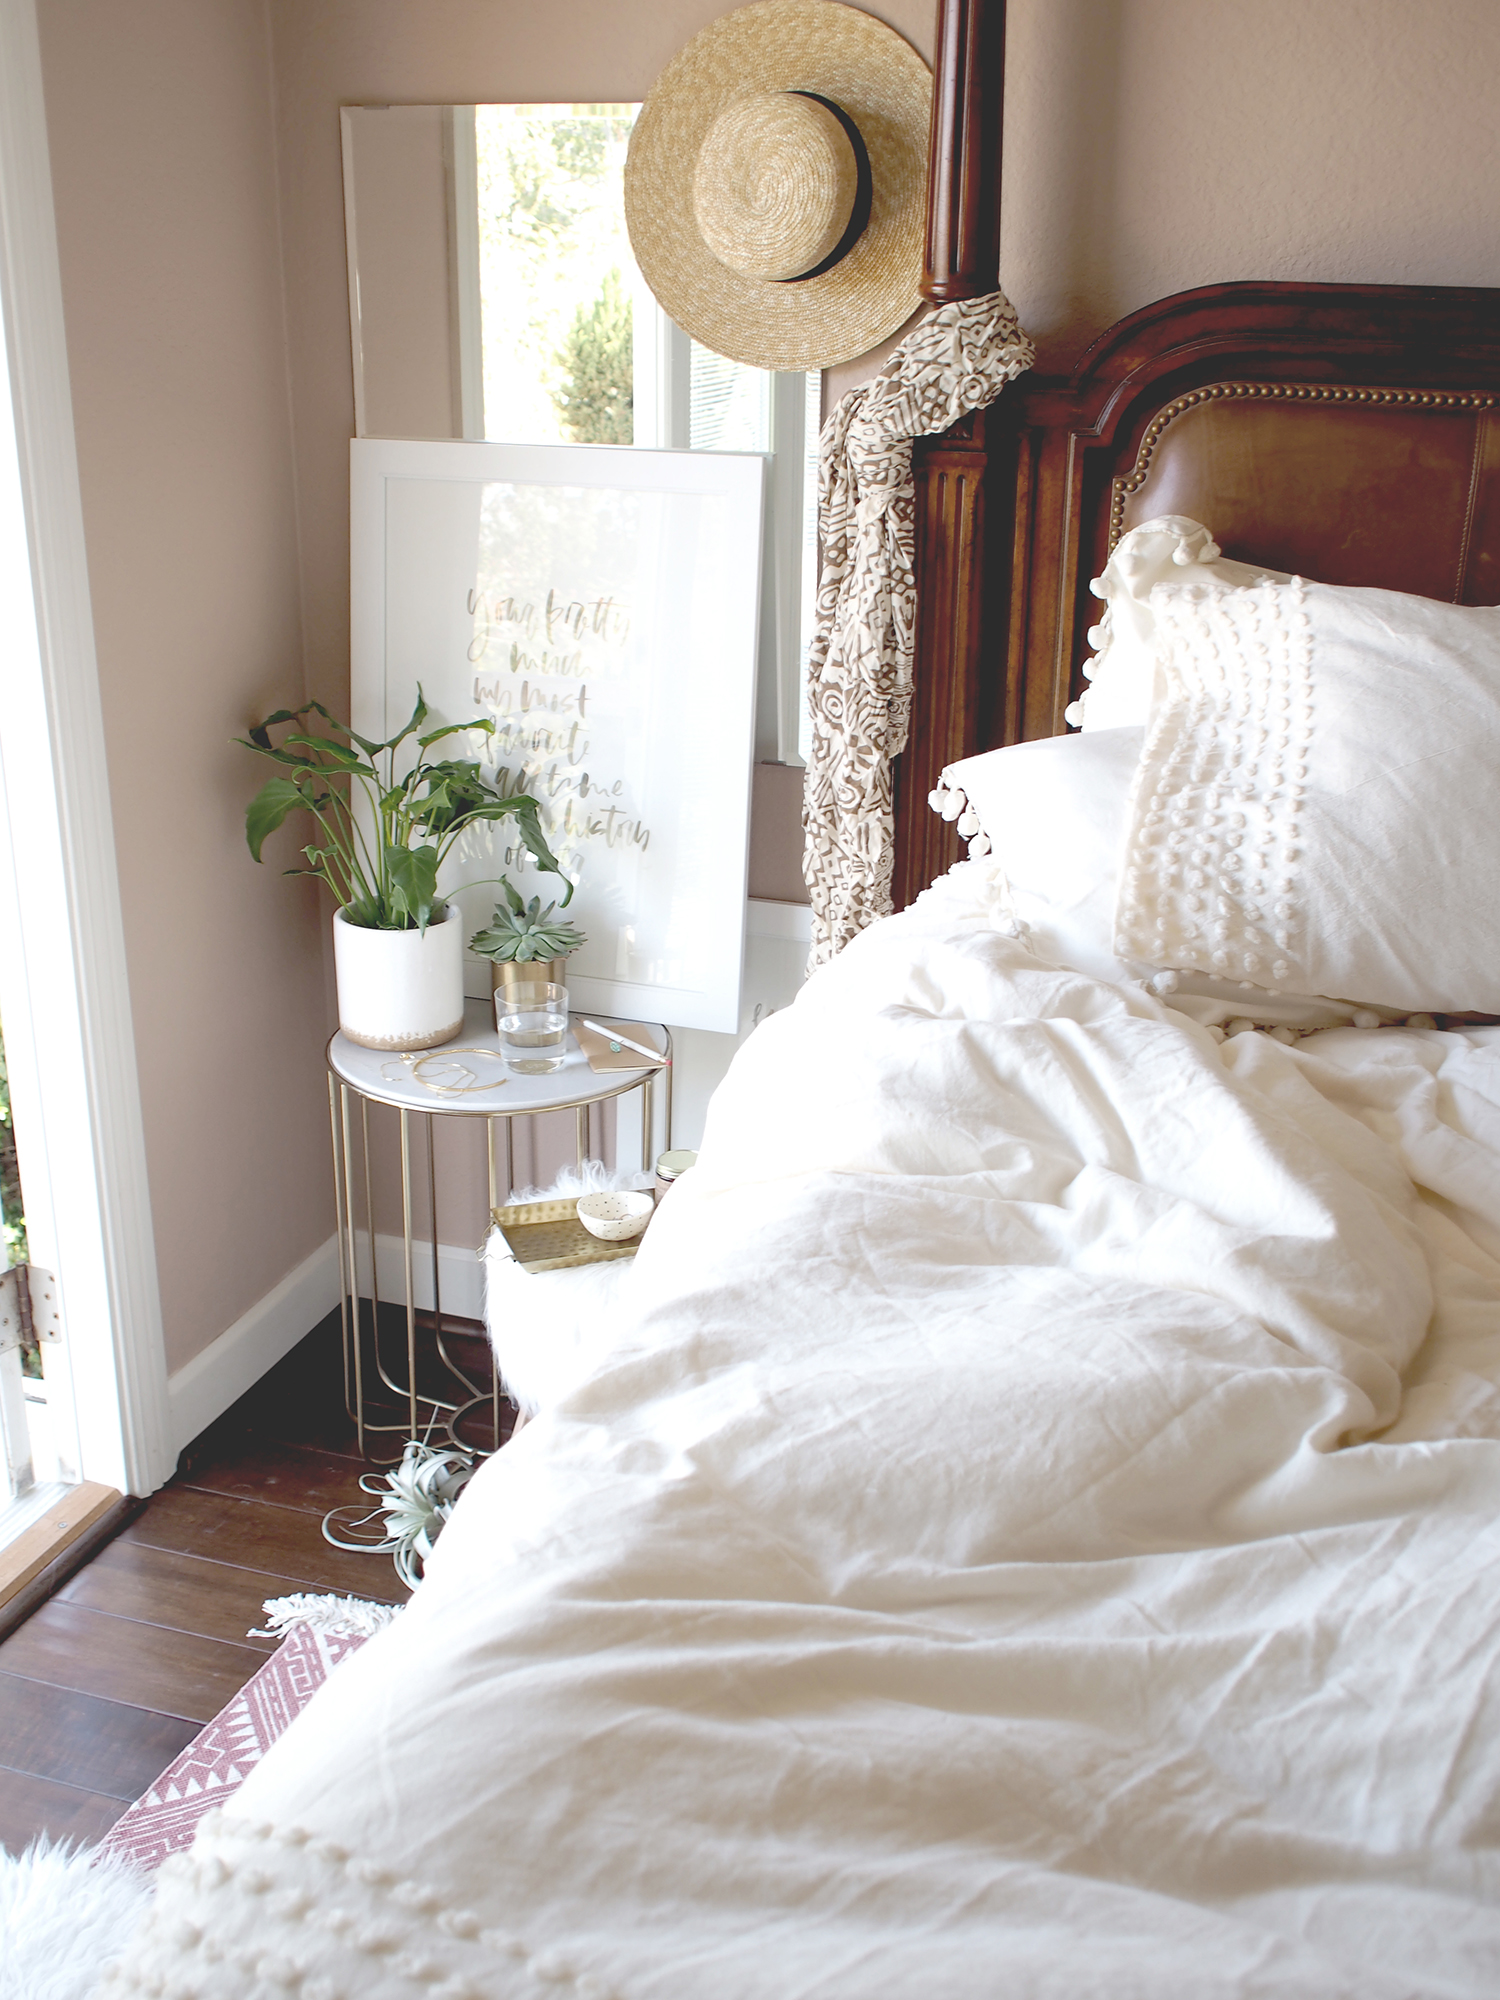 How to give your bedroom a quick update for summer | A Fabulous Fete